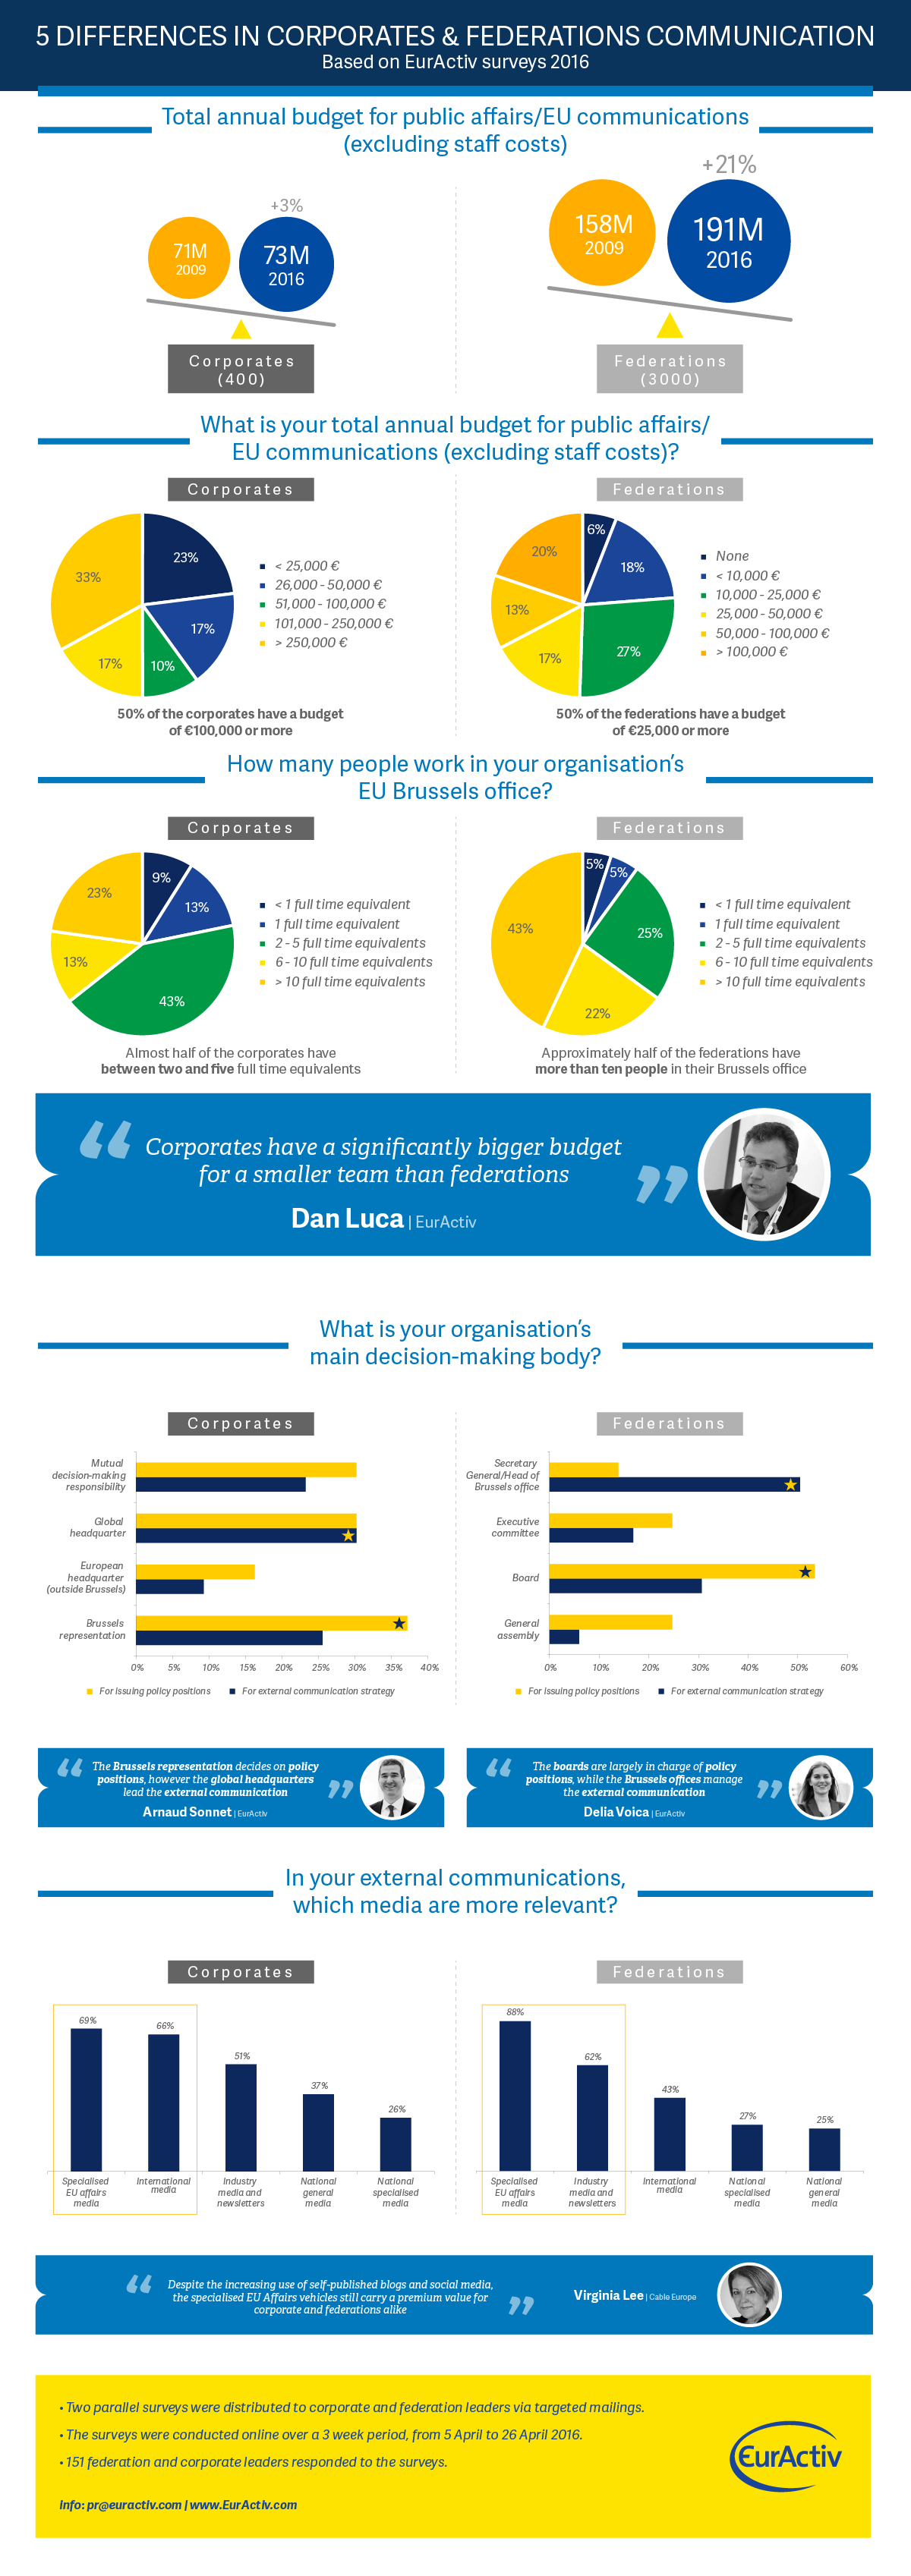 5 differences in corporates & federations communication